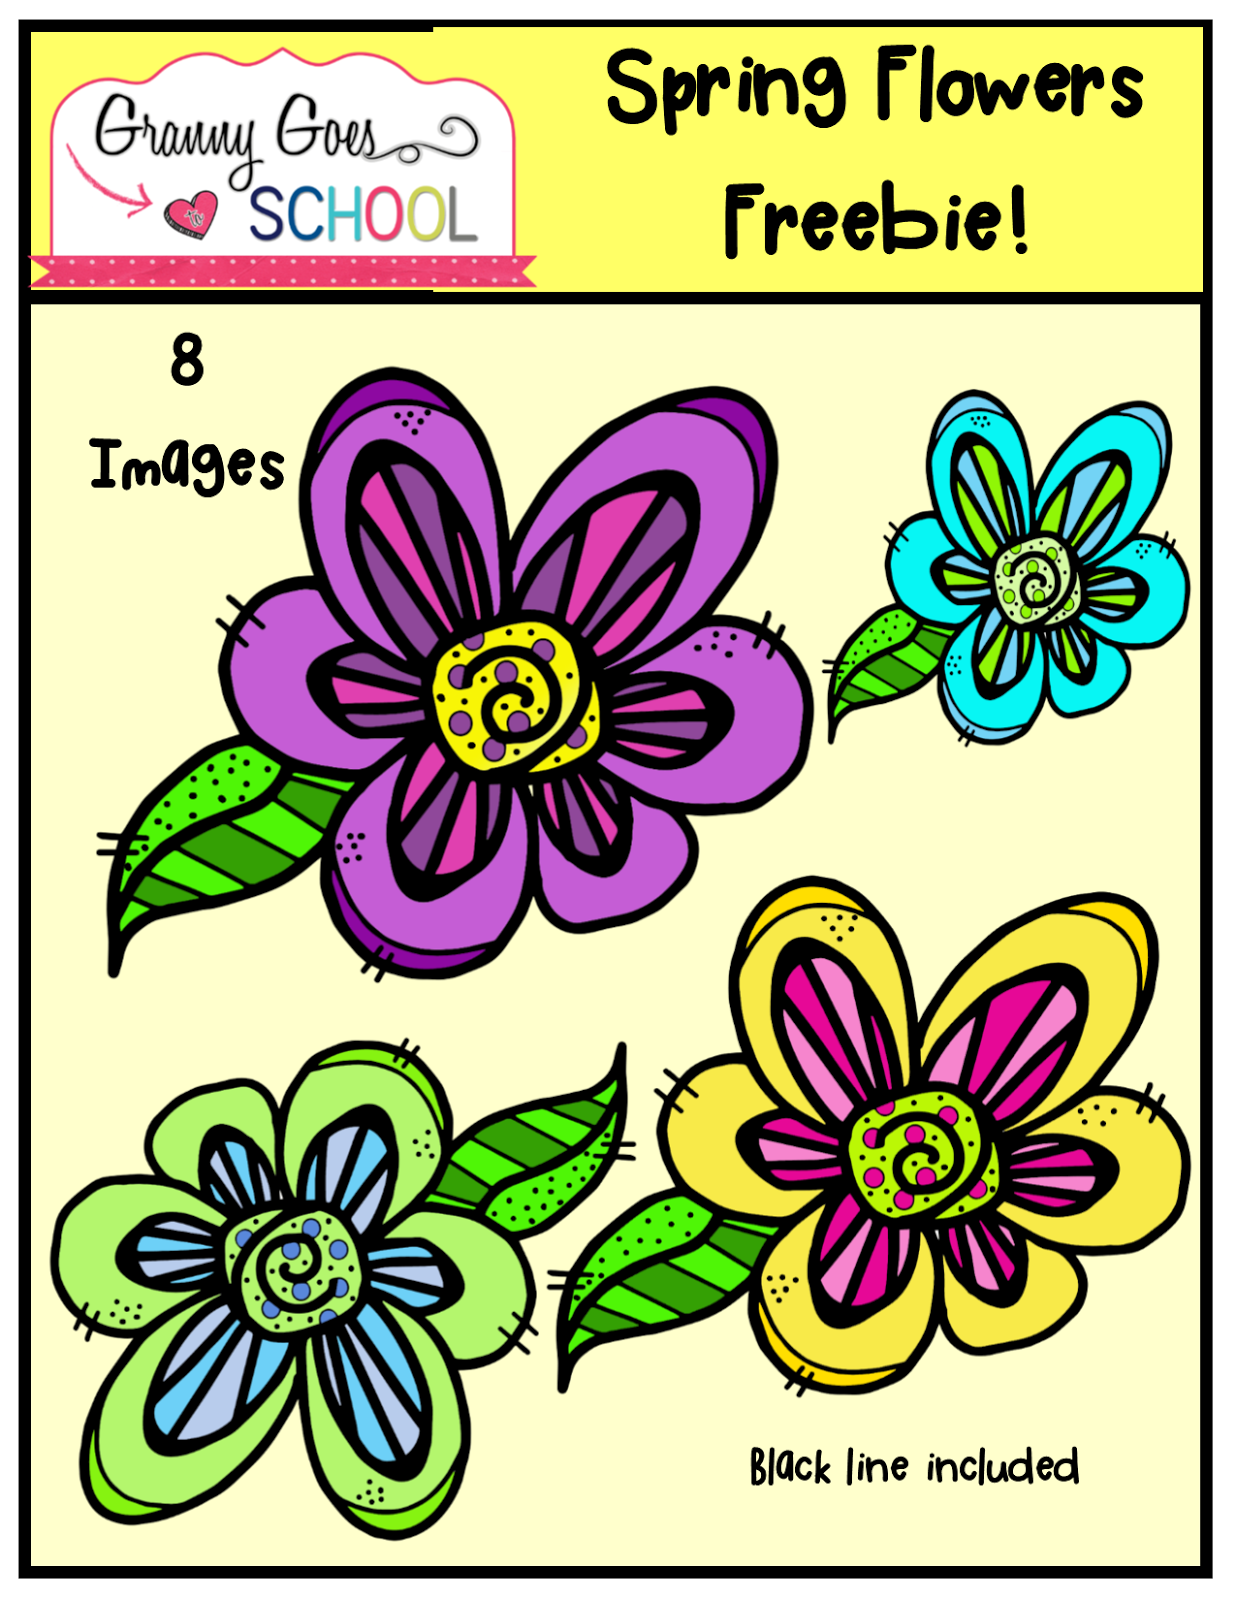 https://www.teacherspayteachers.com/Product/Spring-Flower-Freebie-1776901